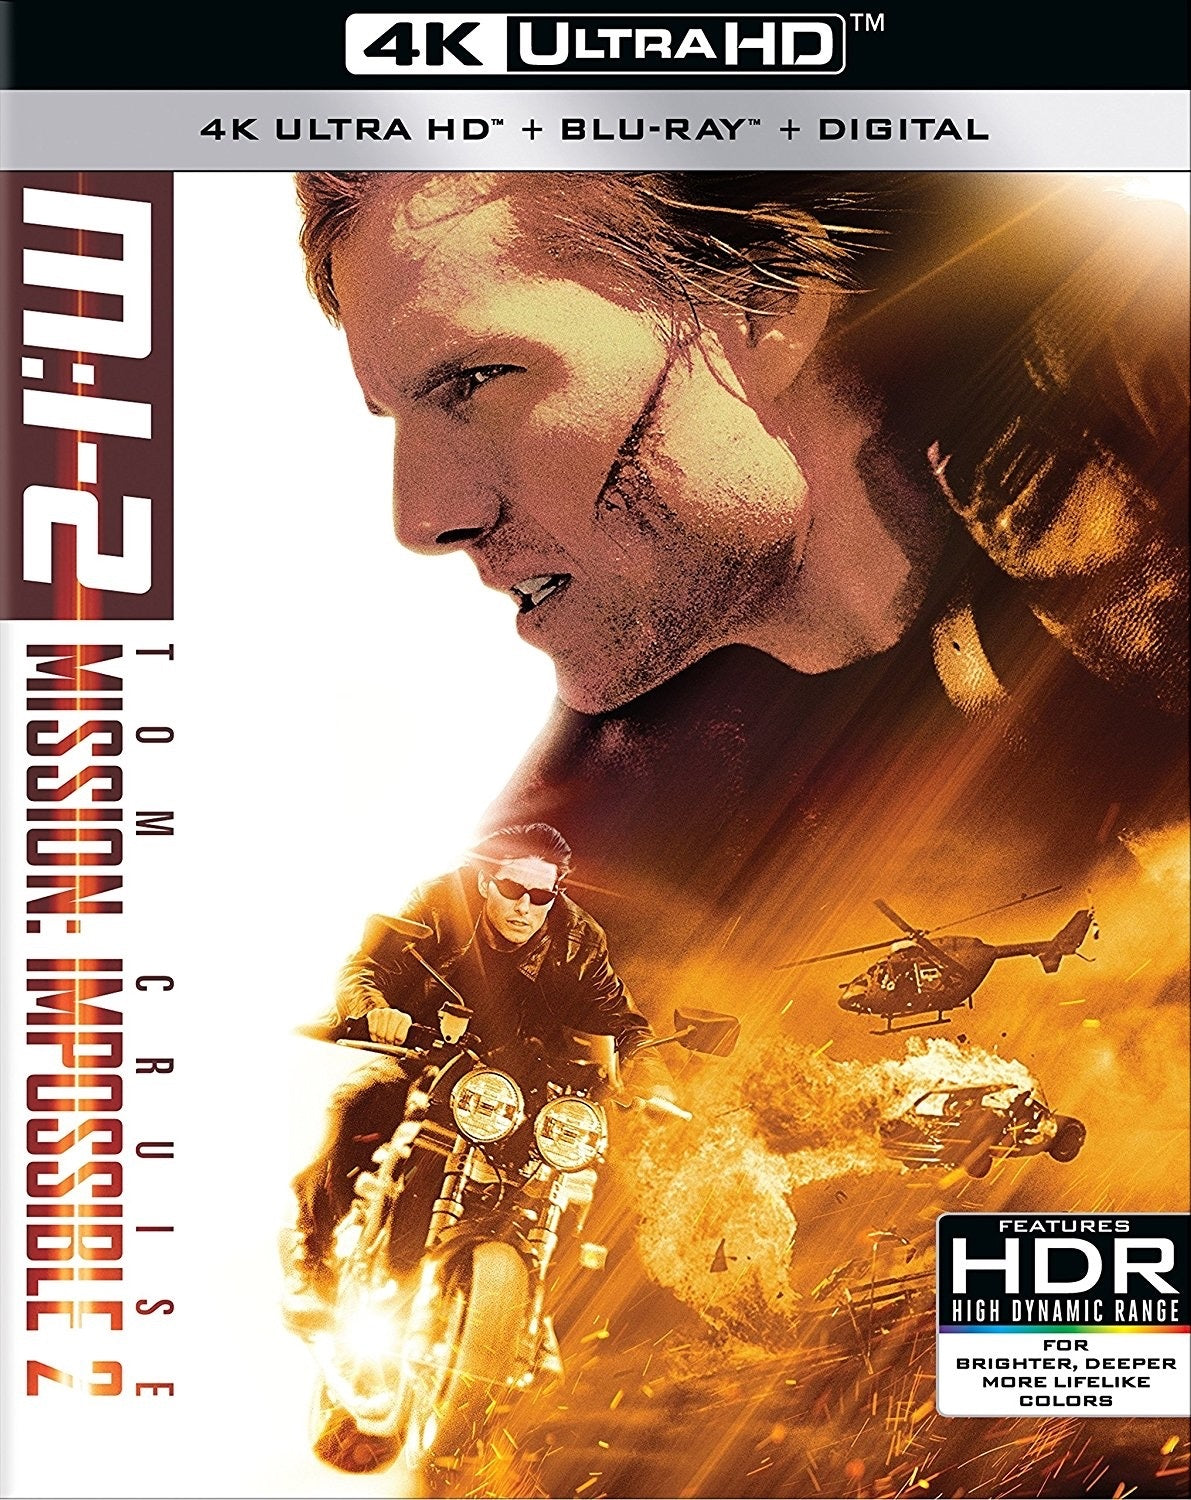 Mission Impossible 2 (2000) iTunes 4K code